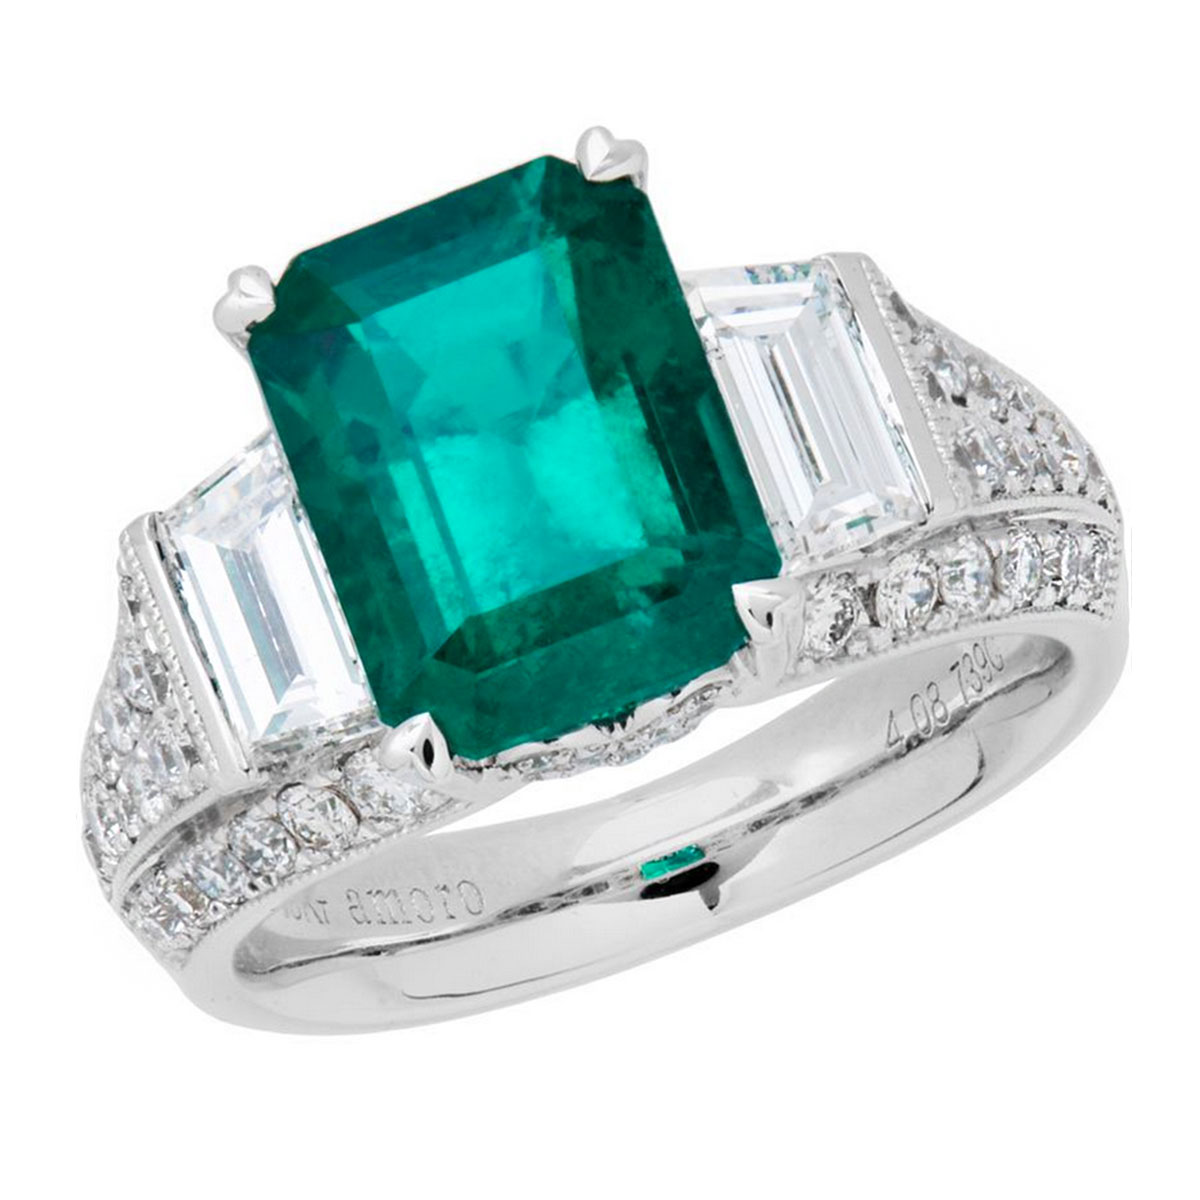 Amoro 18k White Gold 4.08ct Colombian Emerald Diamond Ring